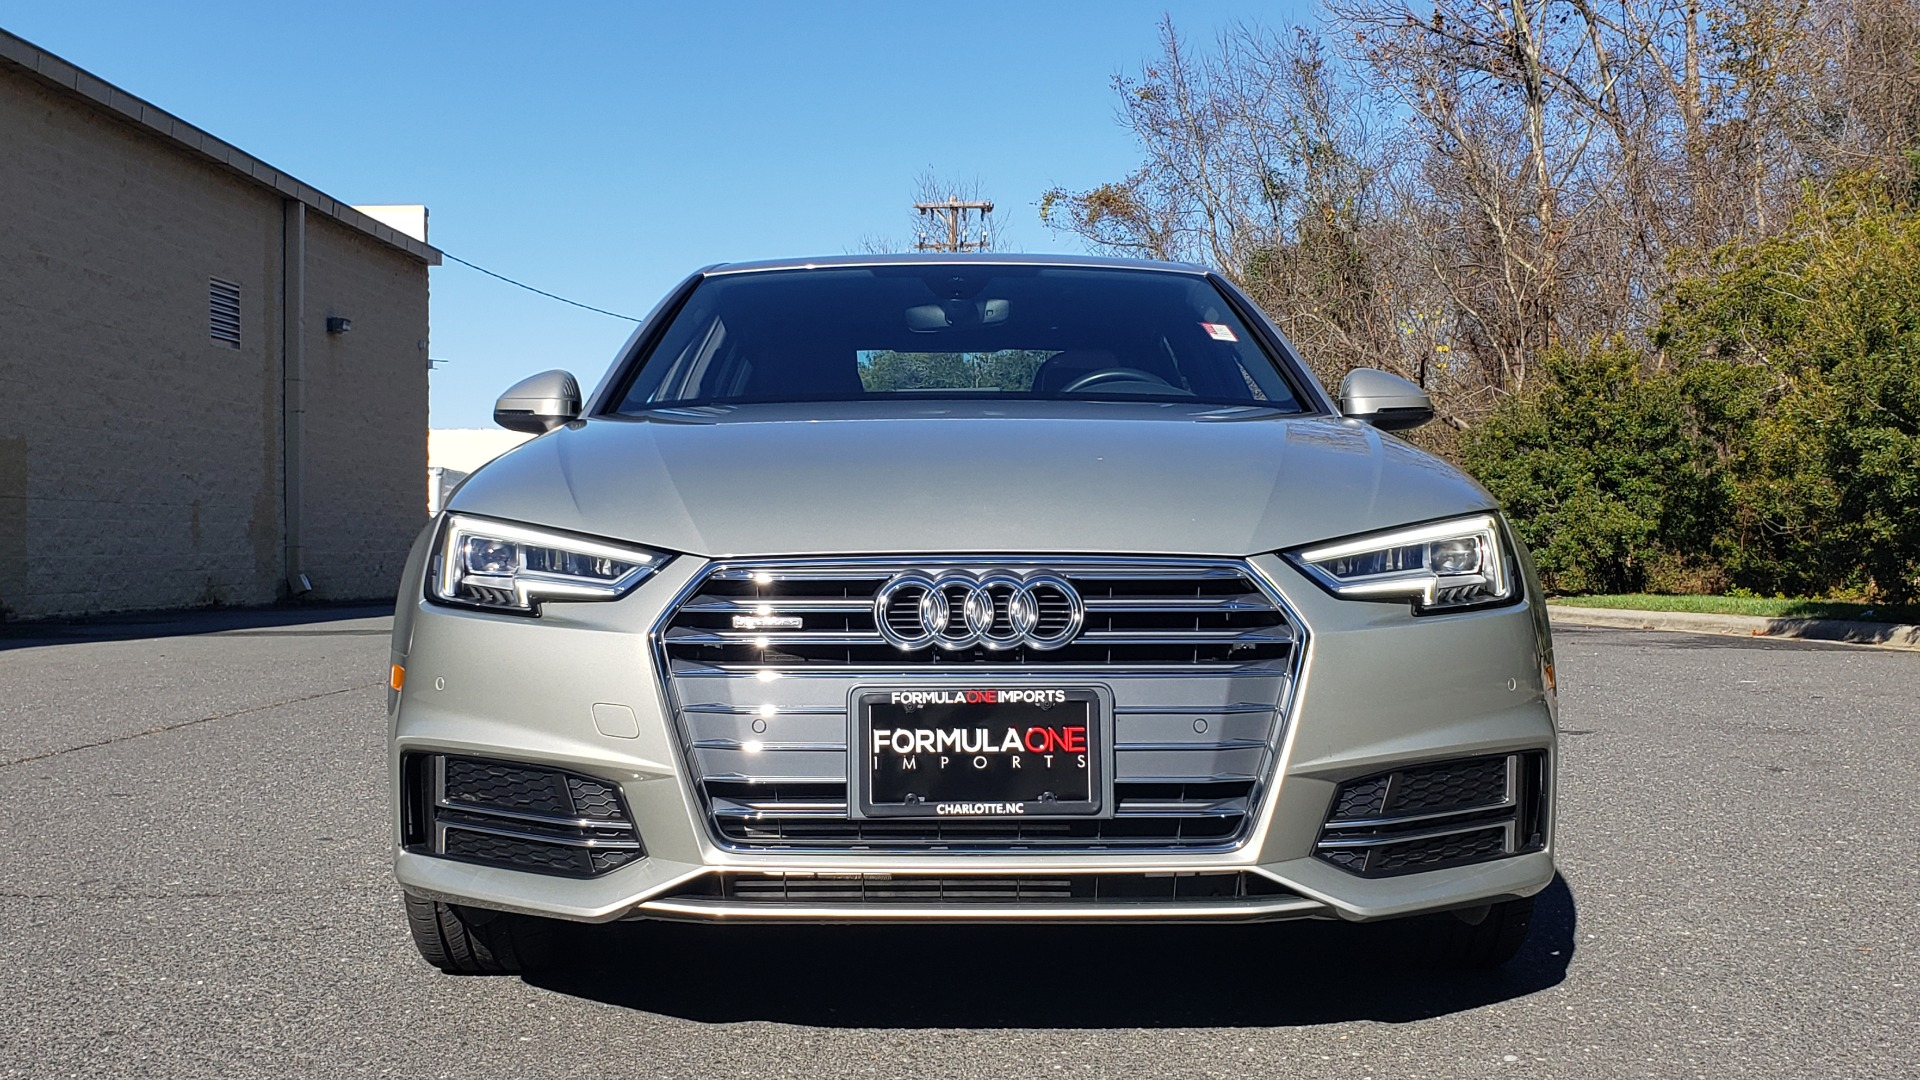 Used 2017 Audi A4 PREMIUM PLUS / TECH PKG / B&O SND / S-LINE / NAV / REARVIEW for sale Sold at Formula Imports in Charlotte NC 28227 21